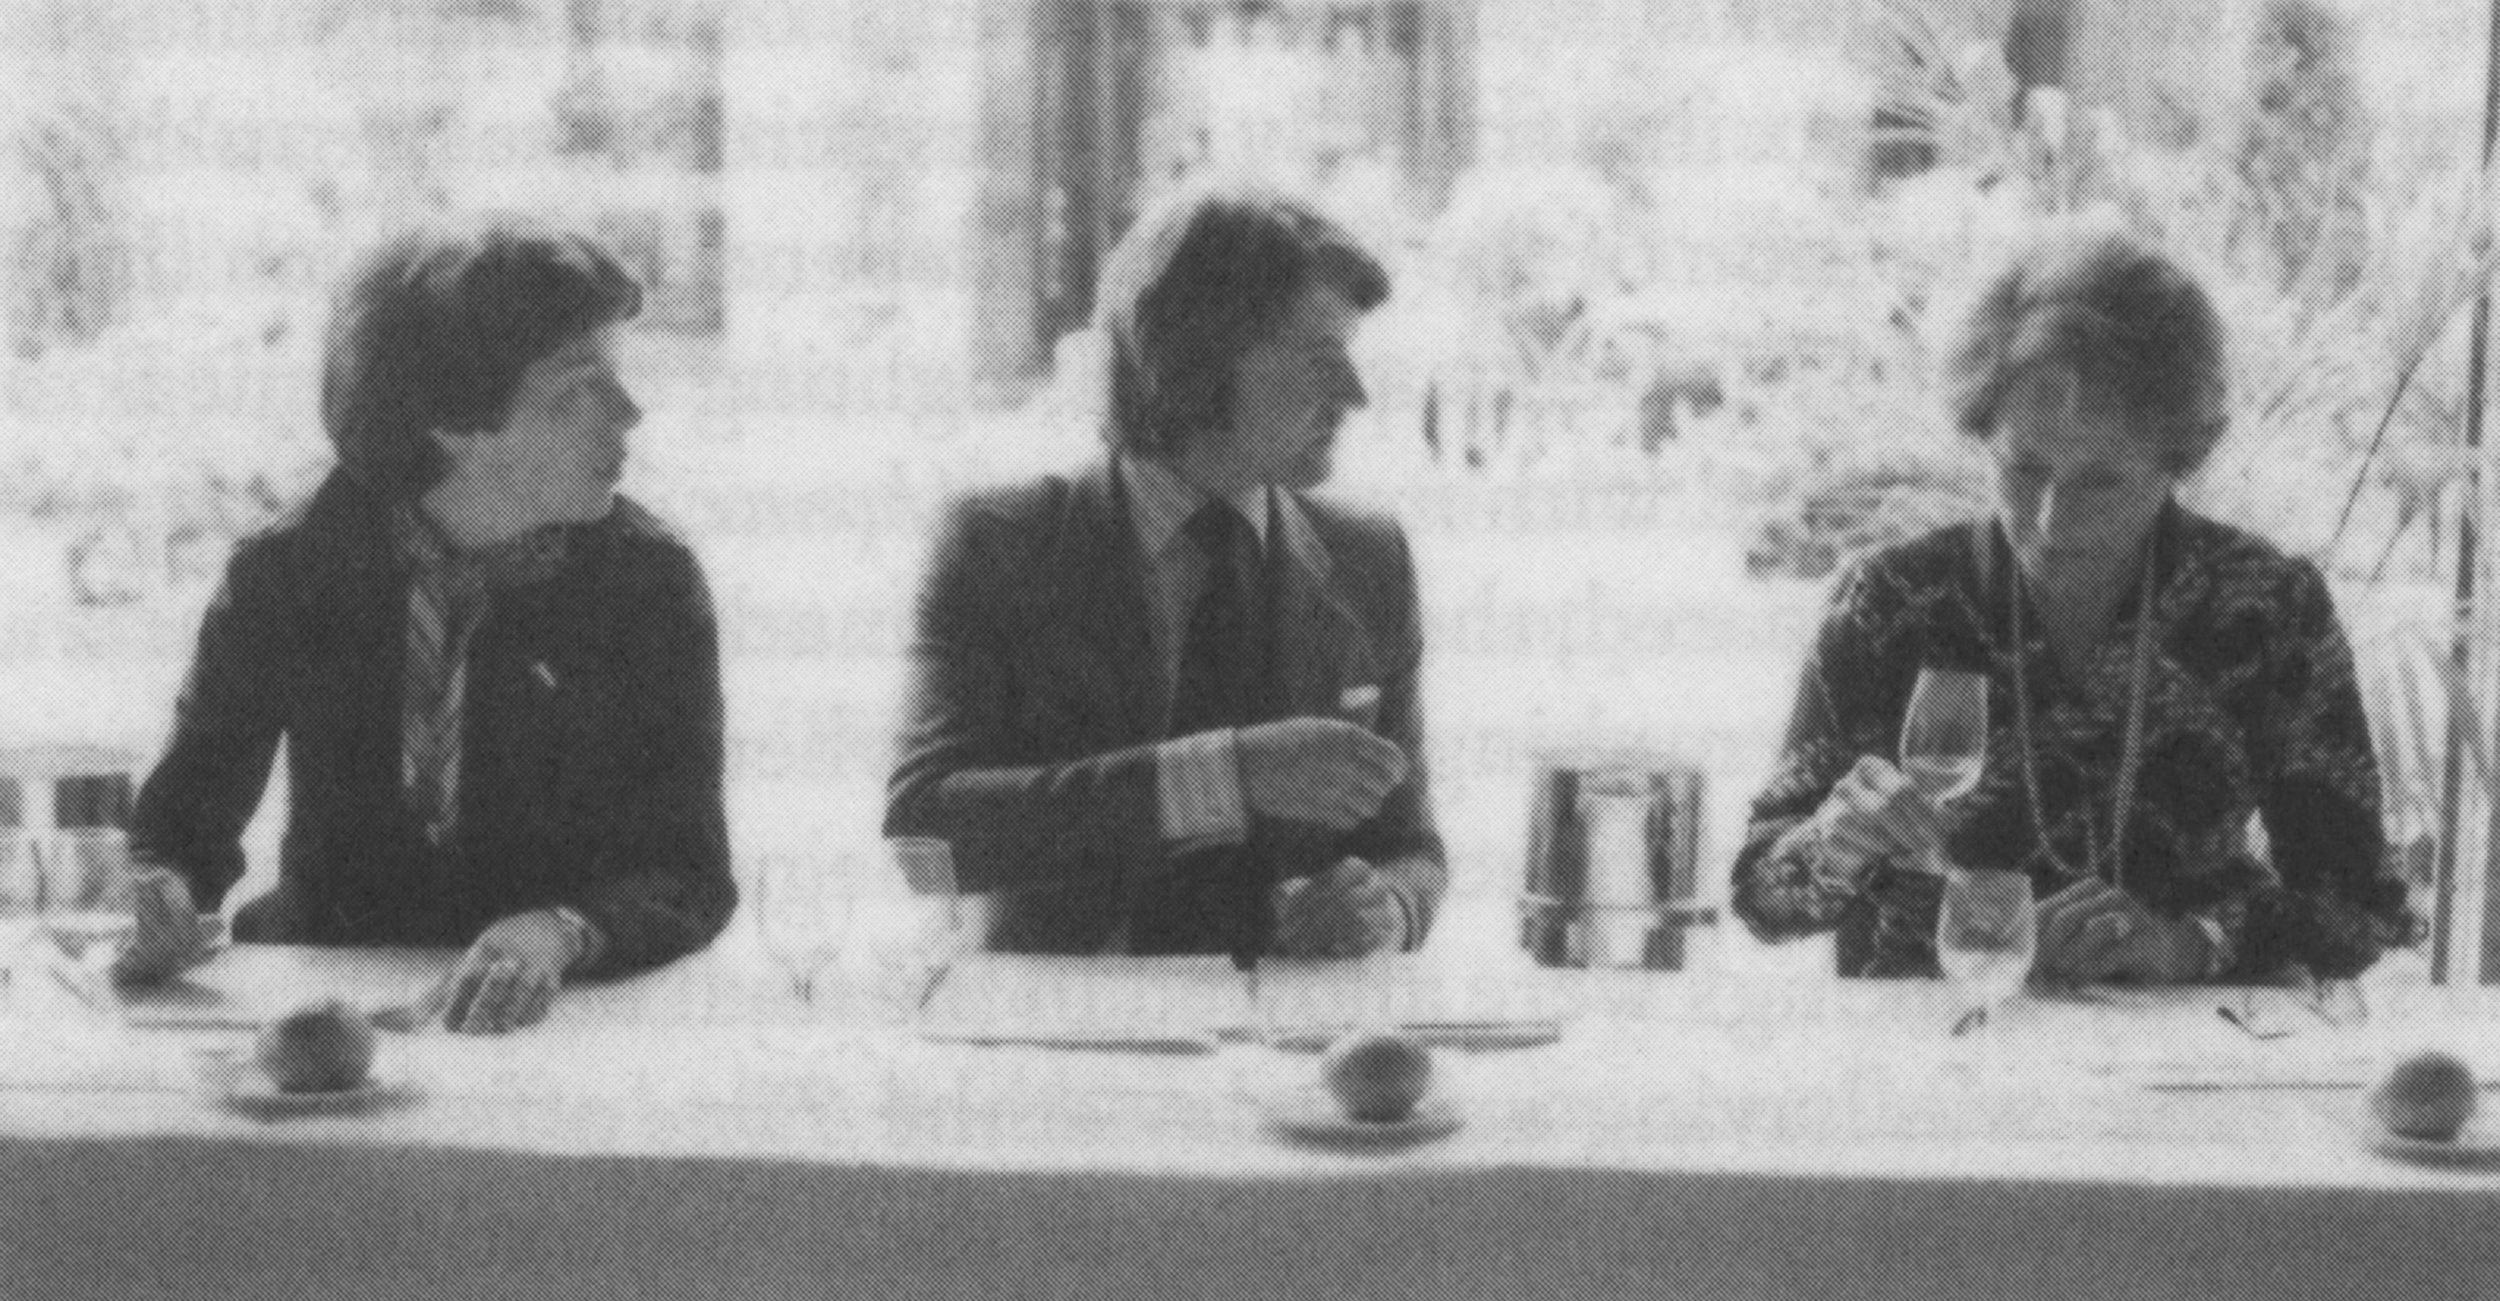 Steven at the 'Judgement of Paris', 24 May 1976.